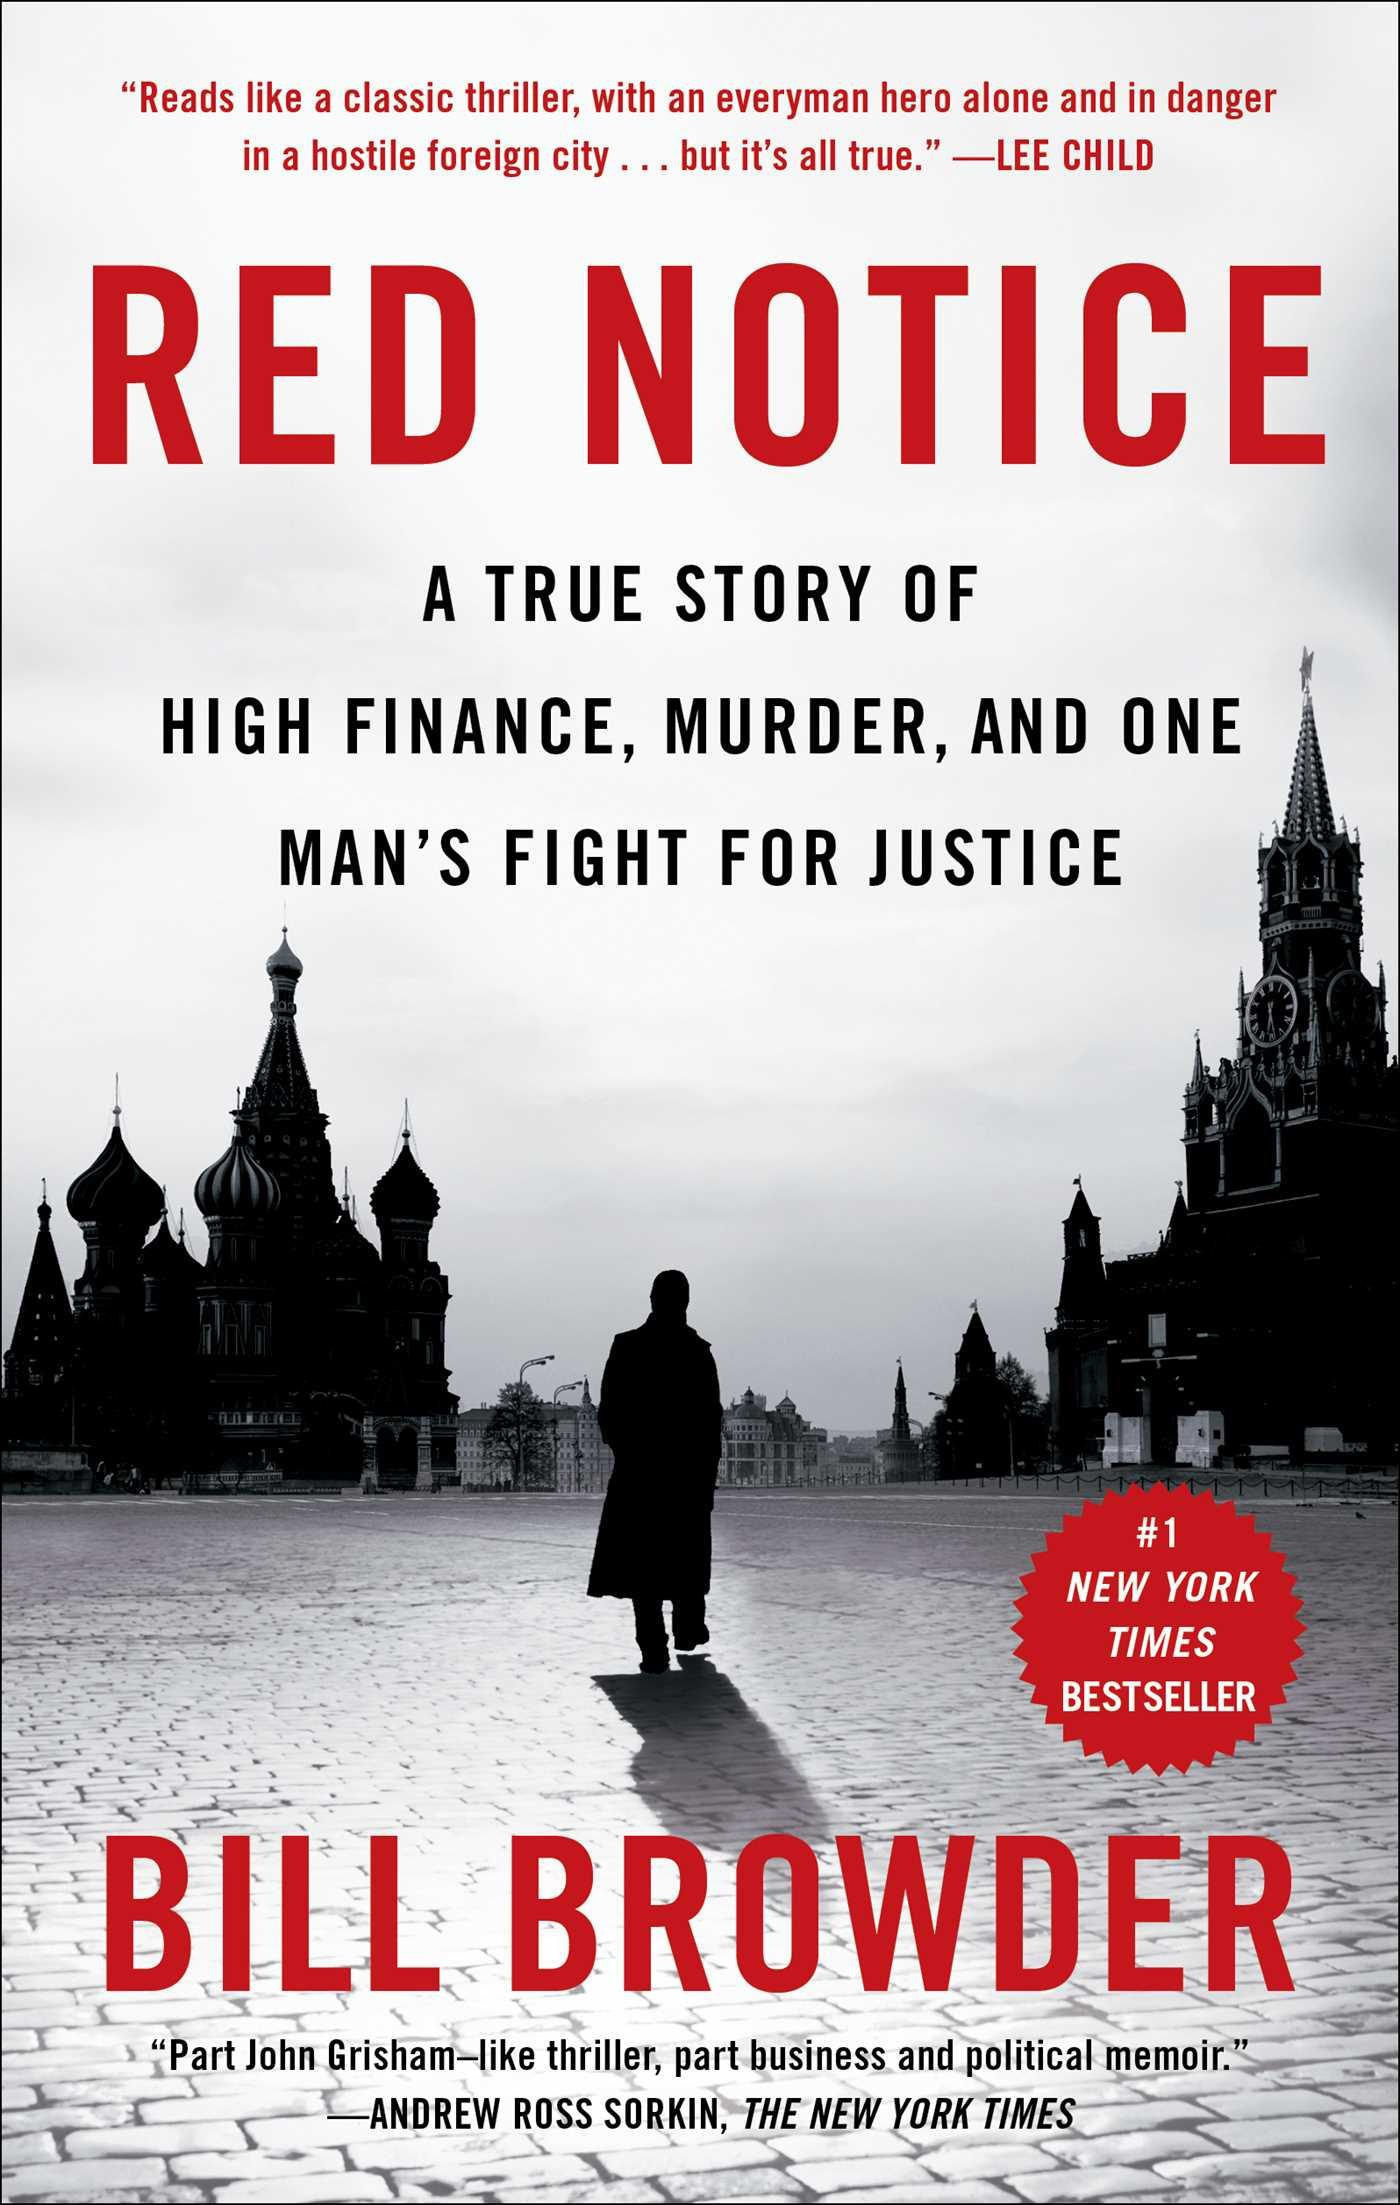 red notice a true story of high finance, murder, and one man's fight for justice by bill browder